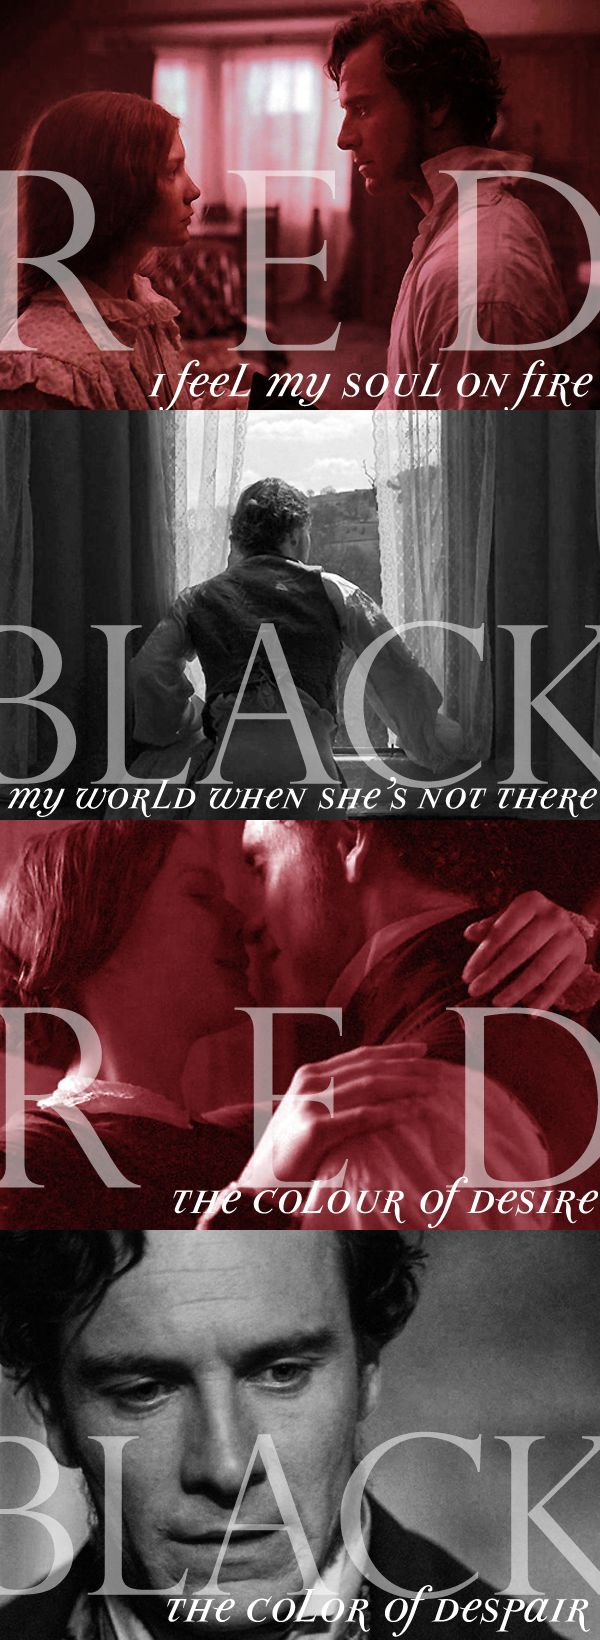 Jane Eyre - The Red and the Black